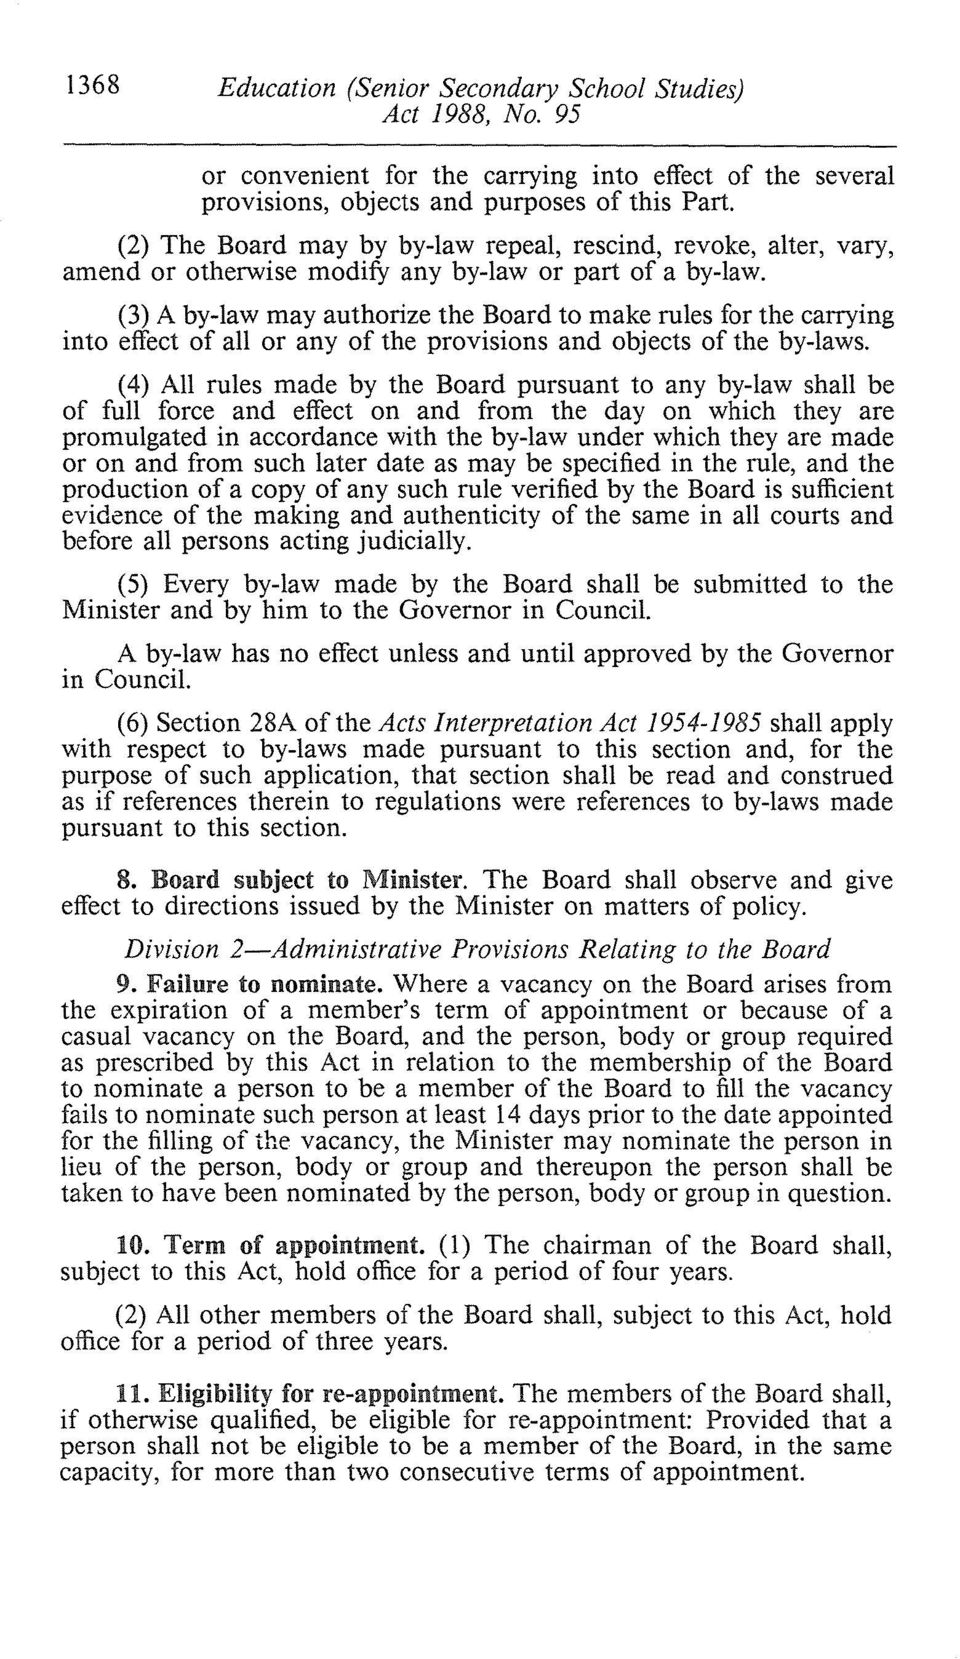 (3) A by-law may authorize the Board to make rules for the carrying into effect of all or any of the provisions and objects of the by-laws.